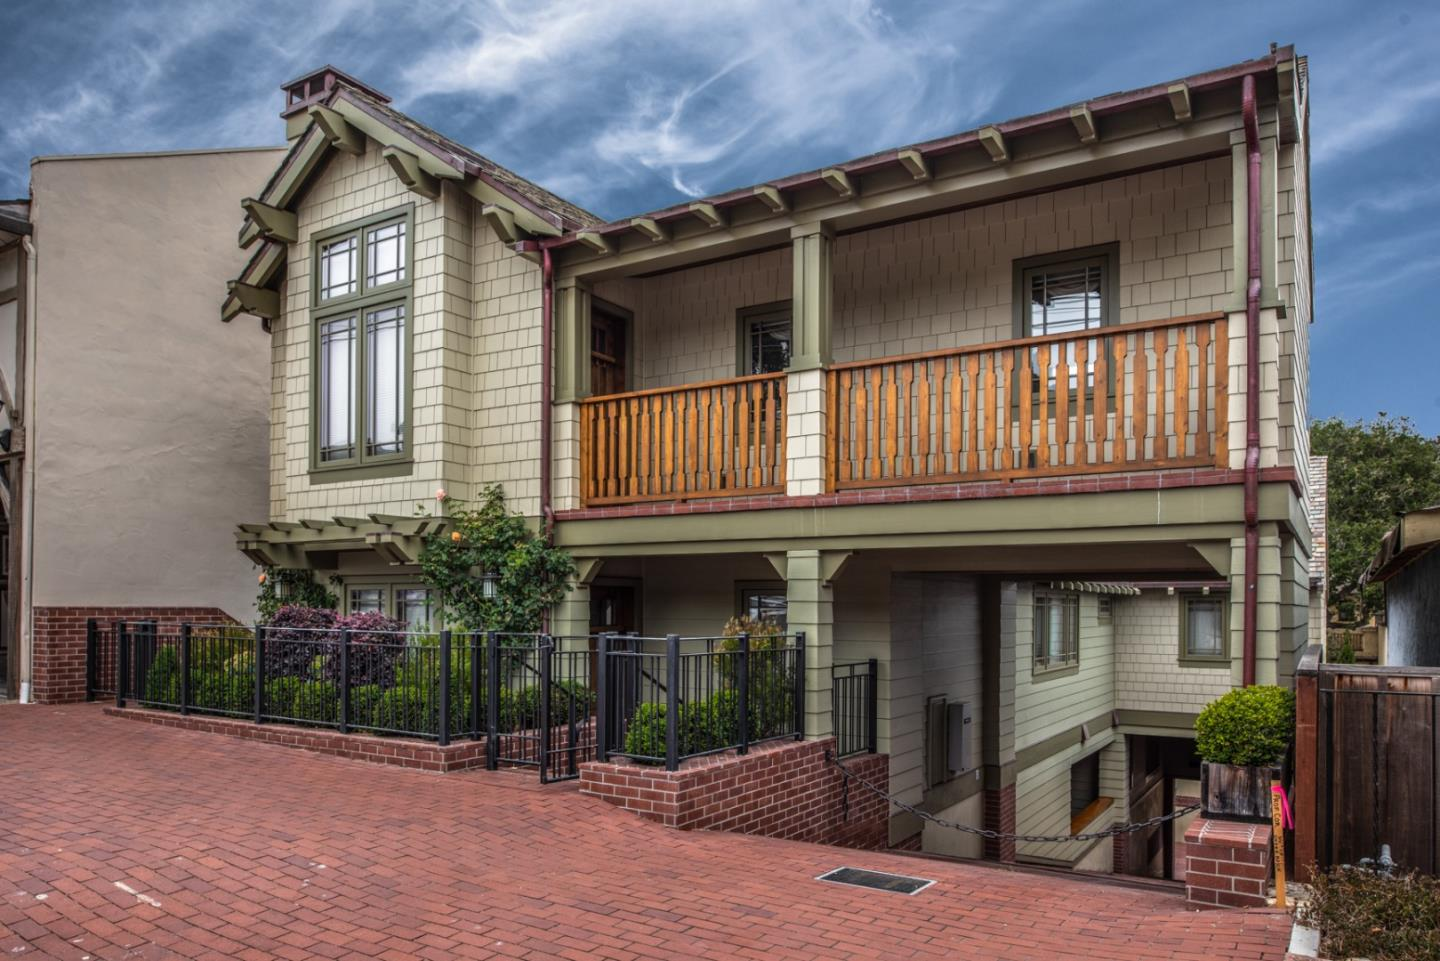 Property for sale at 0 San Carlos 3SE 7th, Residence #2, Carmel,  California 93921